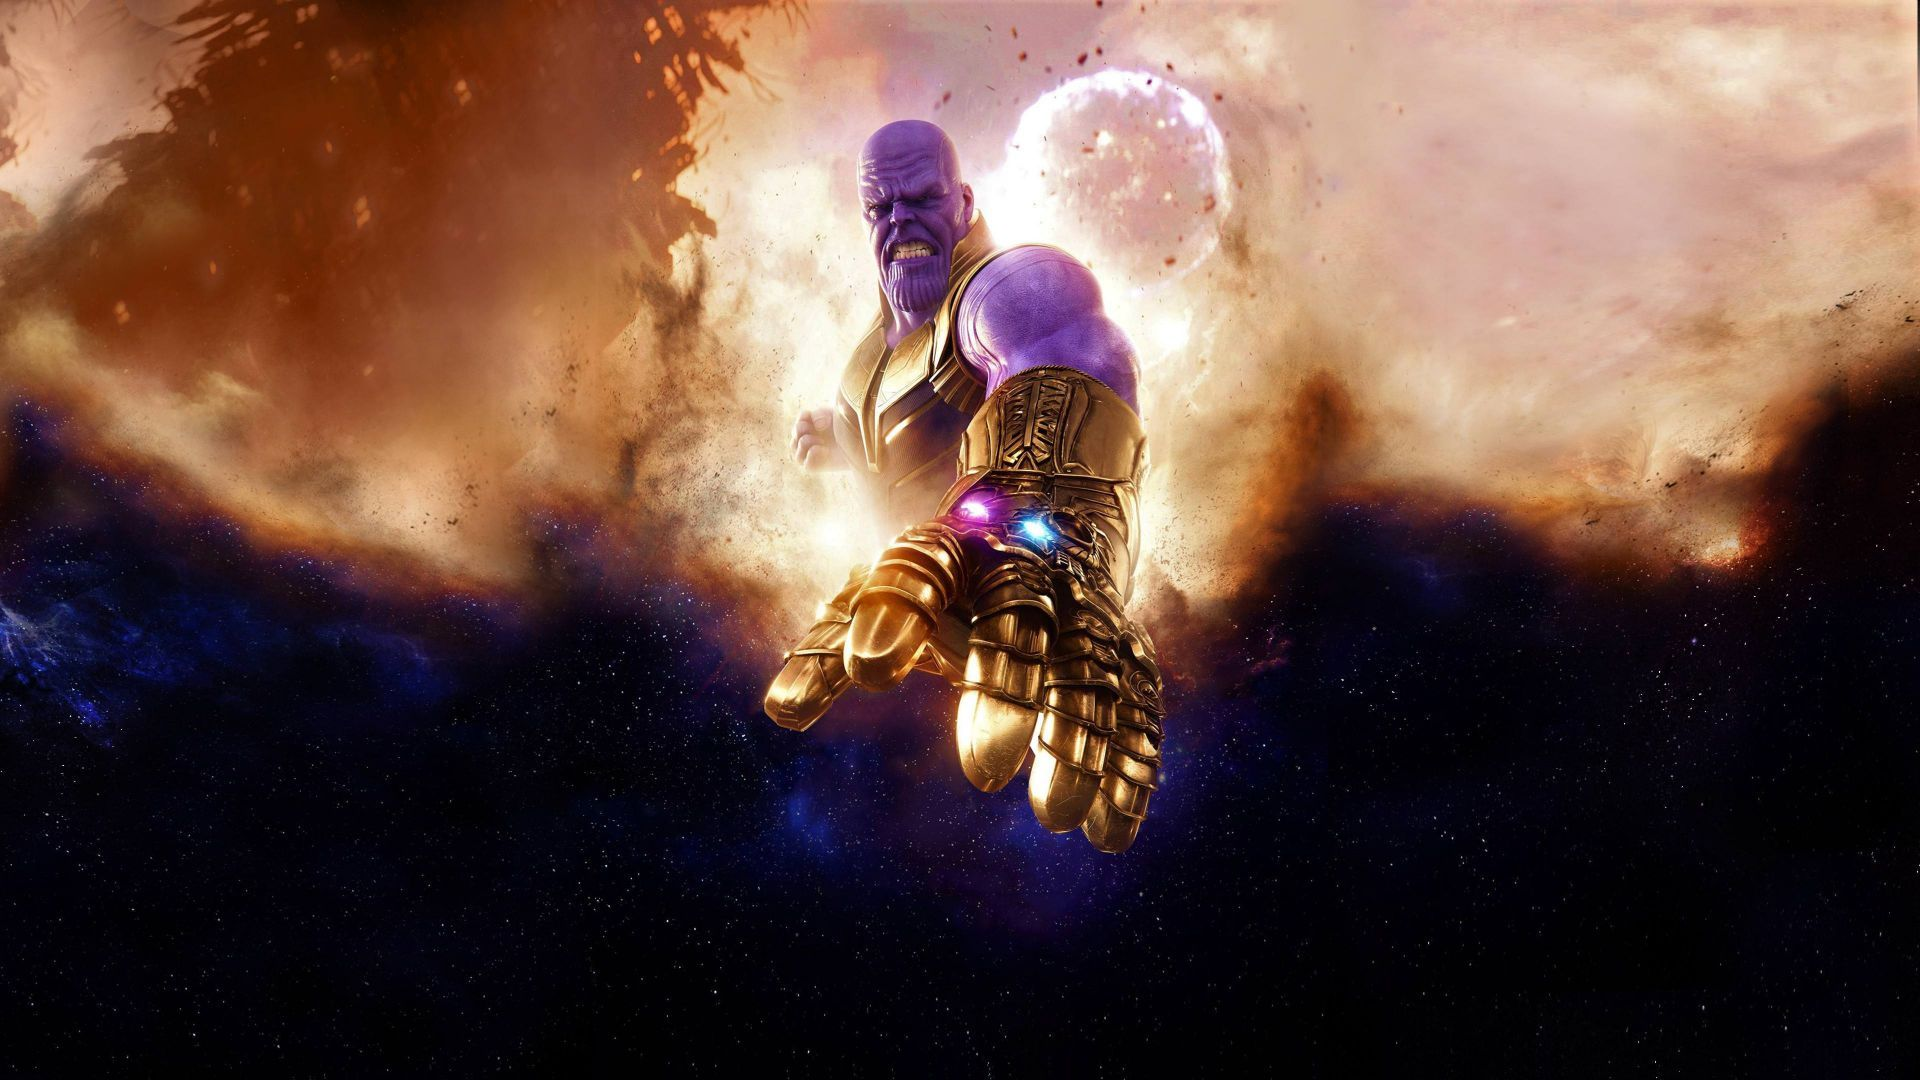 download wallpapers of thanos, avengers: infinity war, 4k, movies